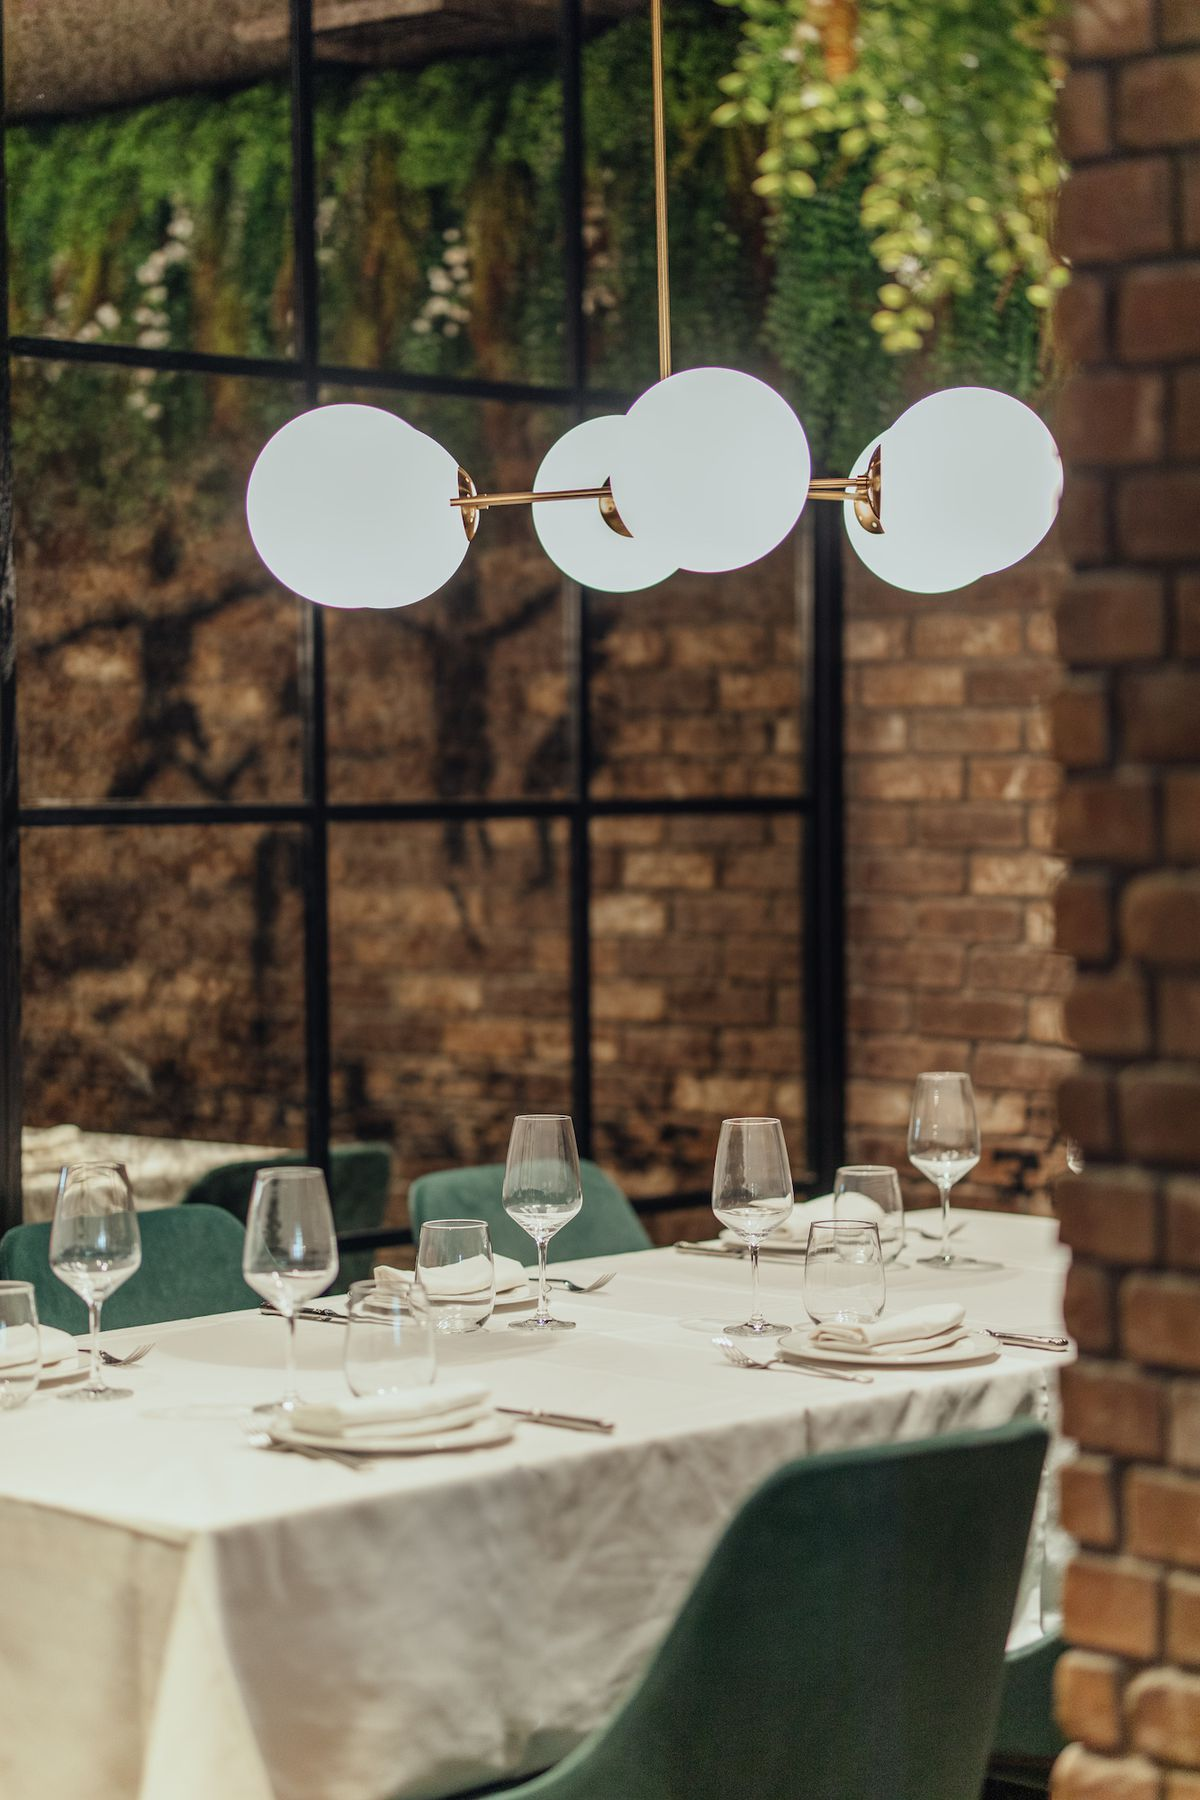 A vertical photo of a new brick and white tablecloth restaurant with lots of greenery.